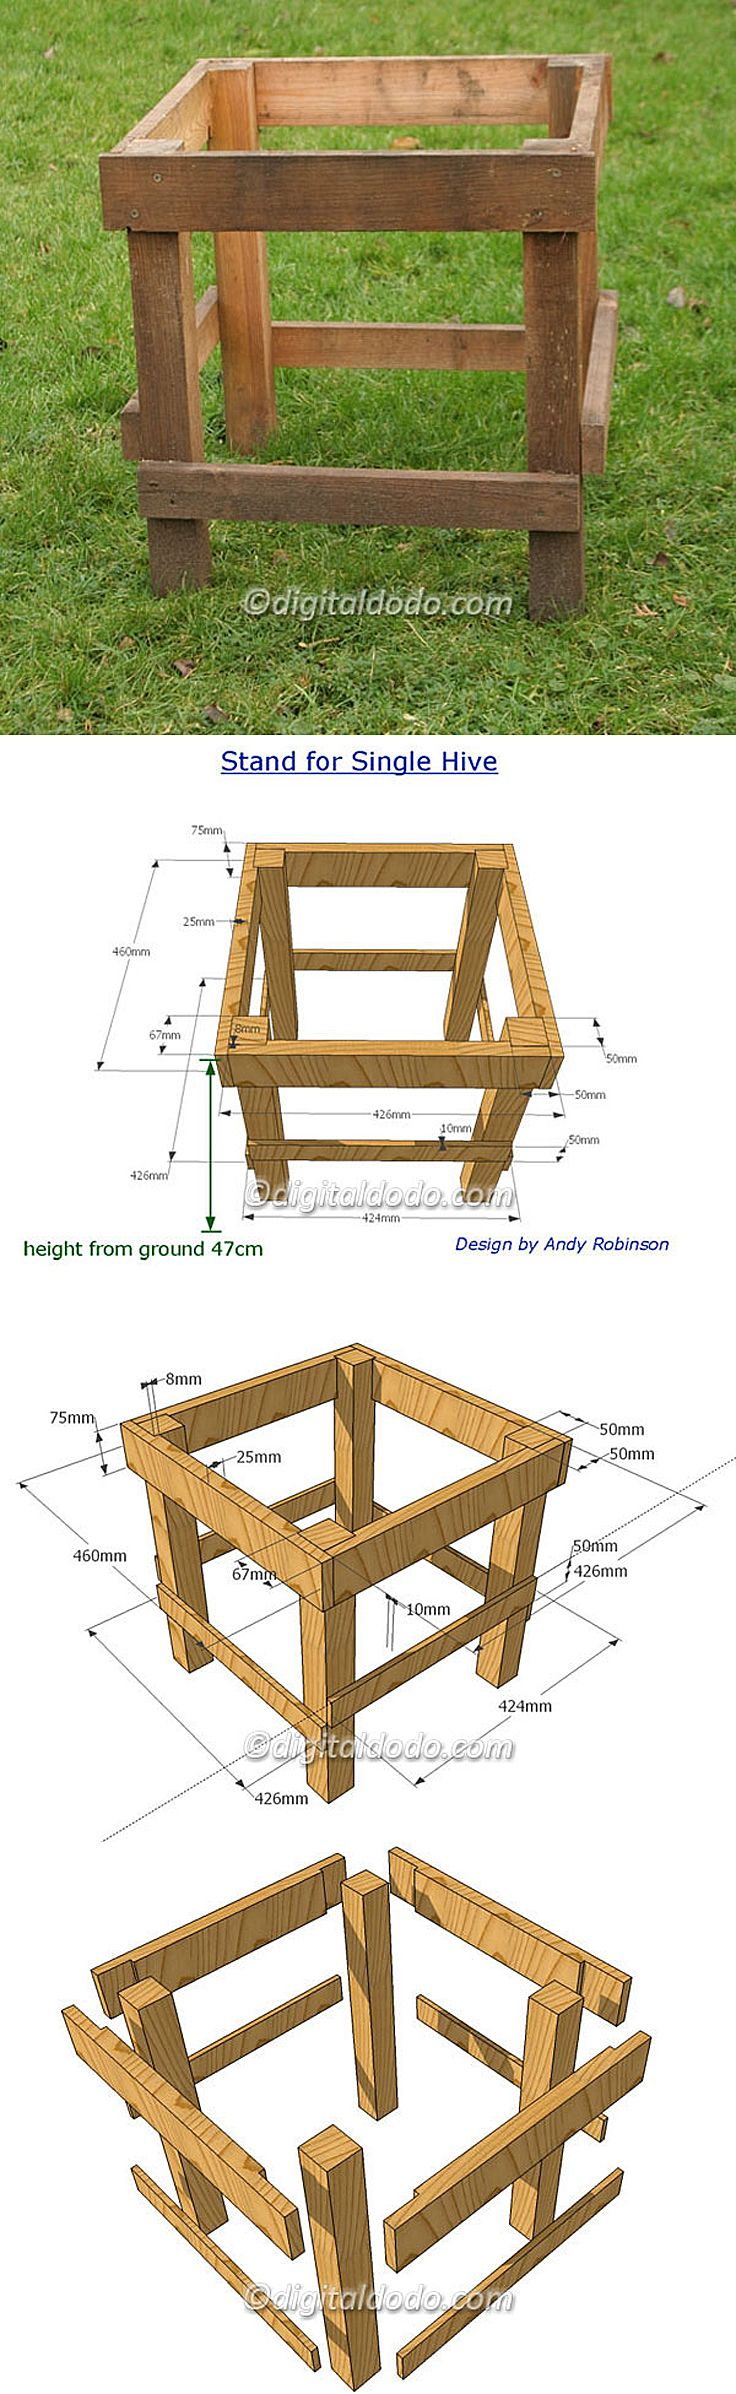 ❧ Beekeeping hive stand with dimensions